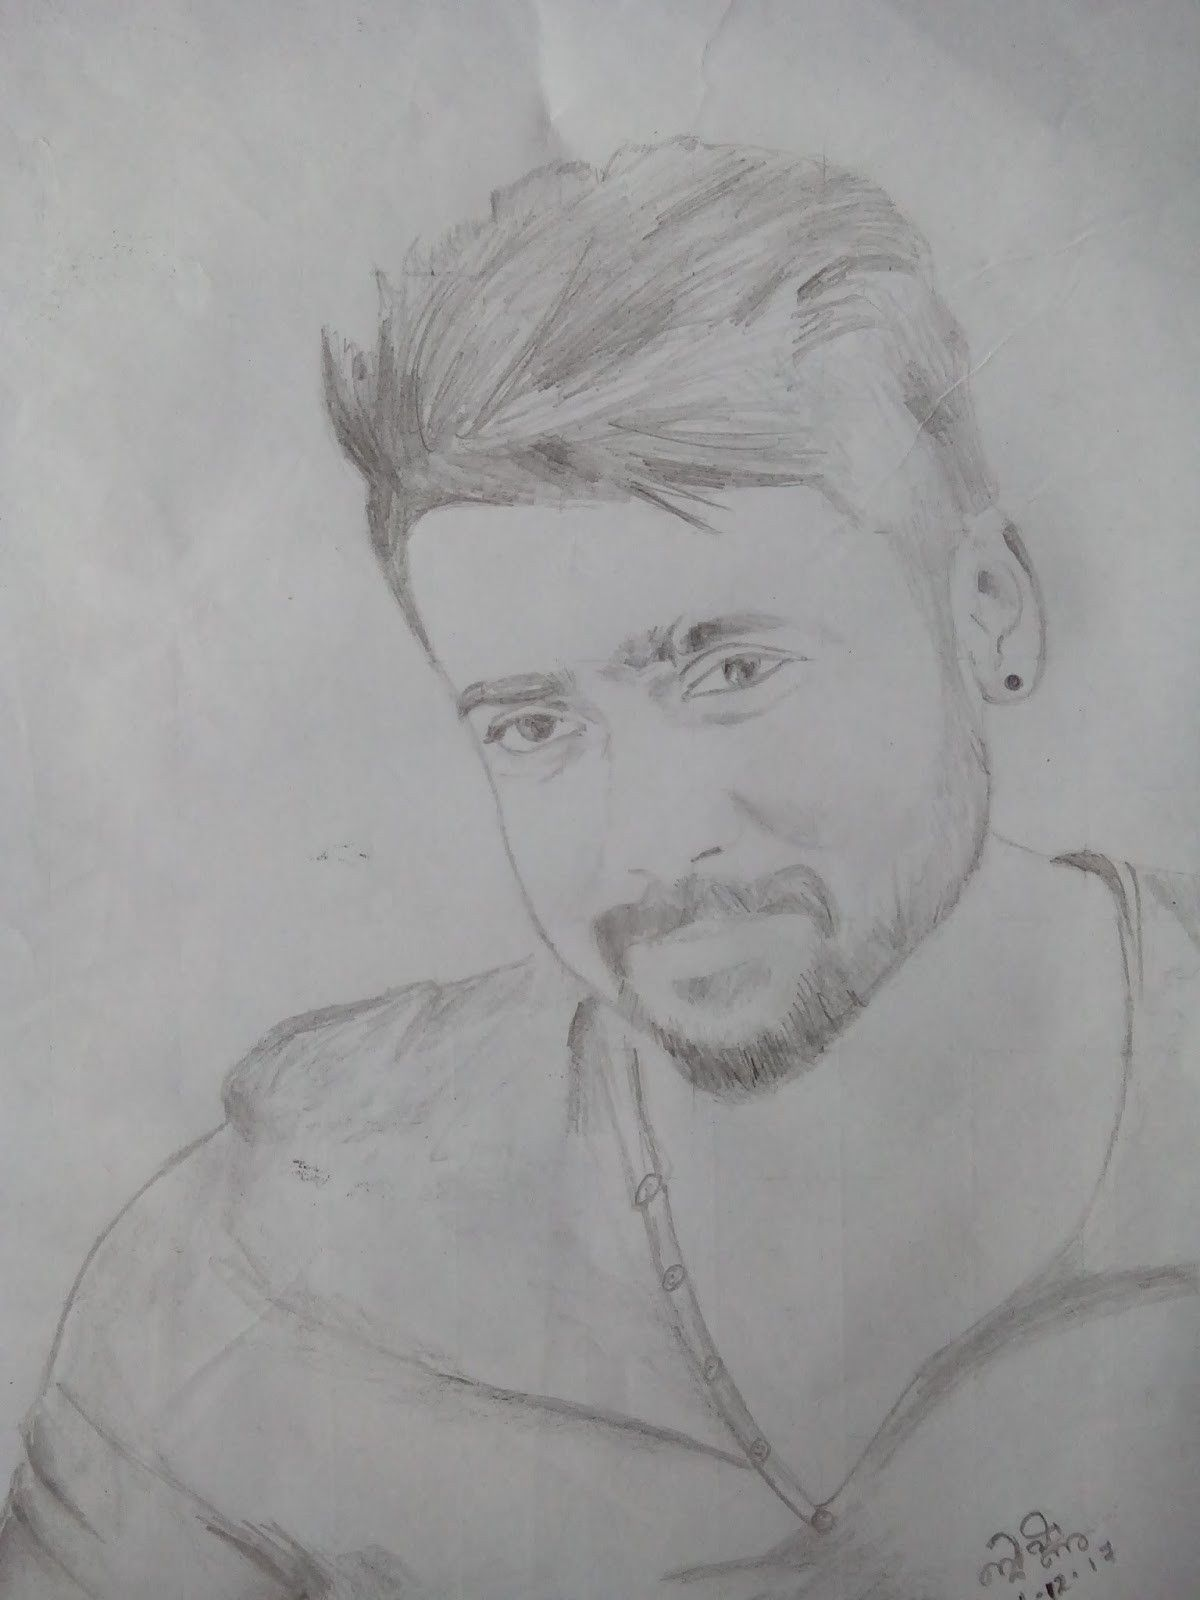 Tamil Actor Surya Pencil Drawing In 2020 Pencil Drawing Images Girly Drawings Pencil Sketch